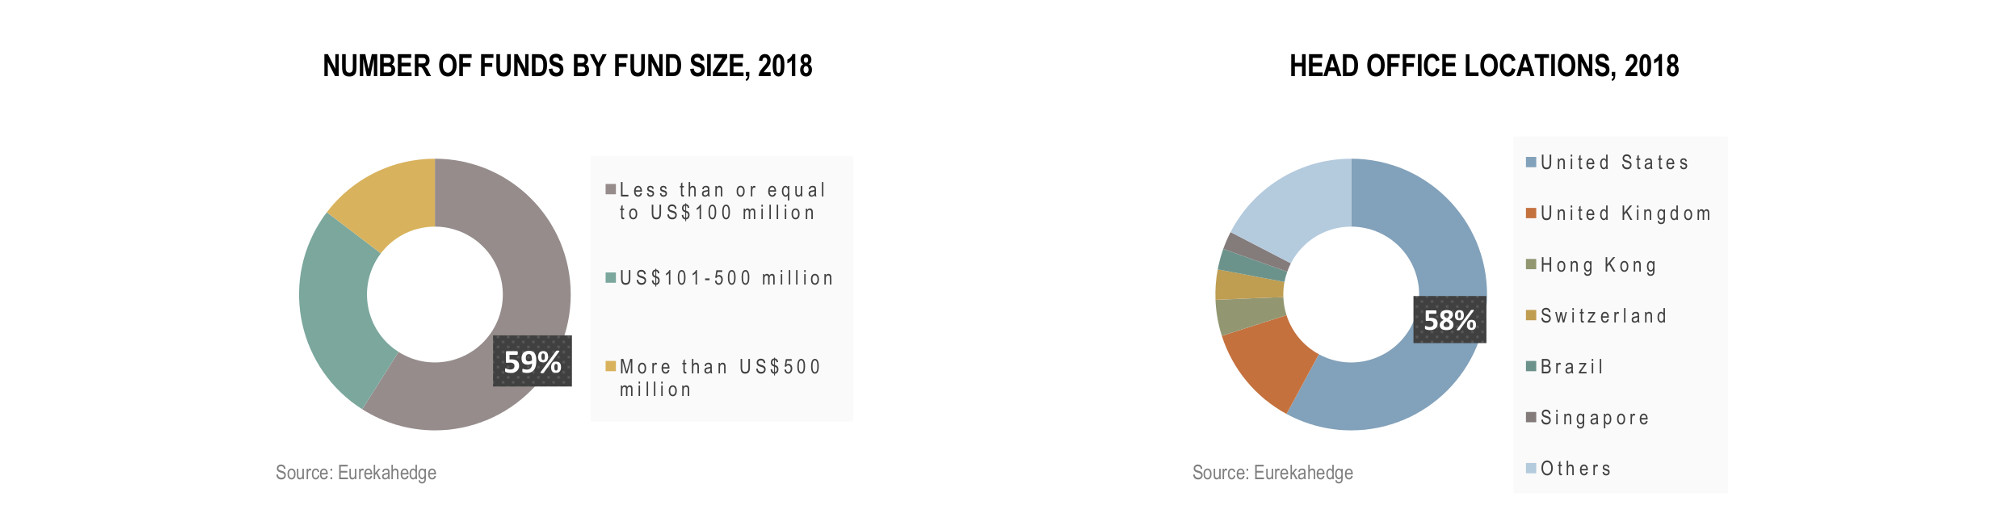 Global Hedge Funds Infographic August 2018 - number of funds by fund size, number of funds by head office locations